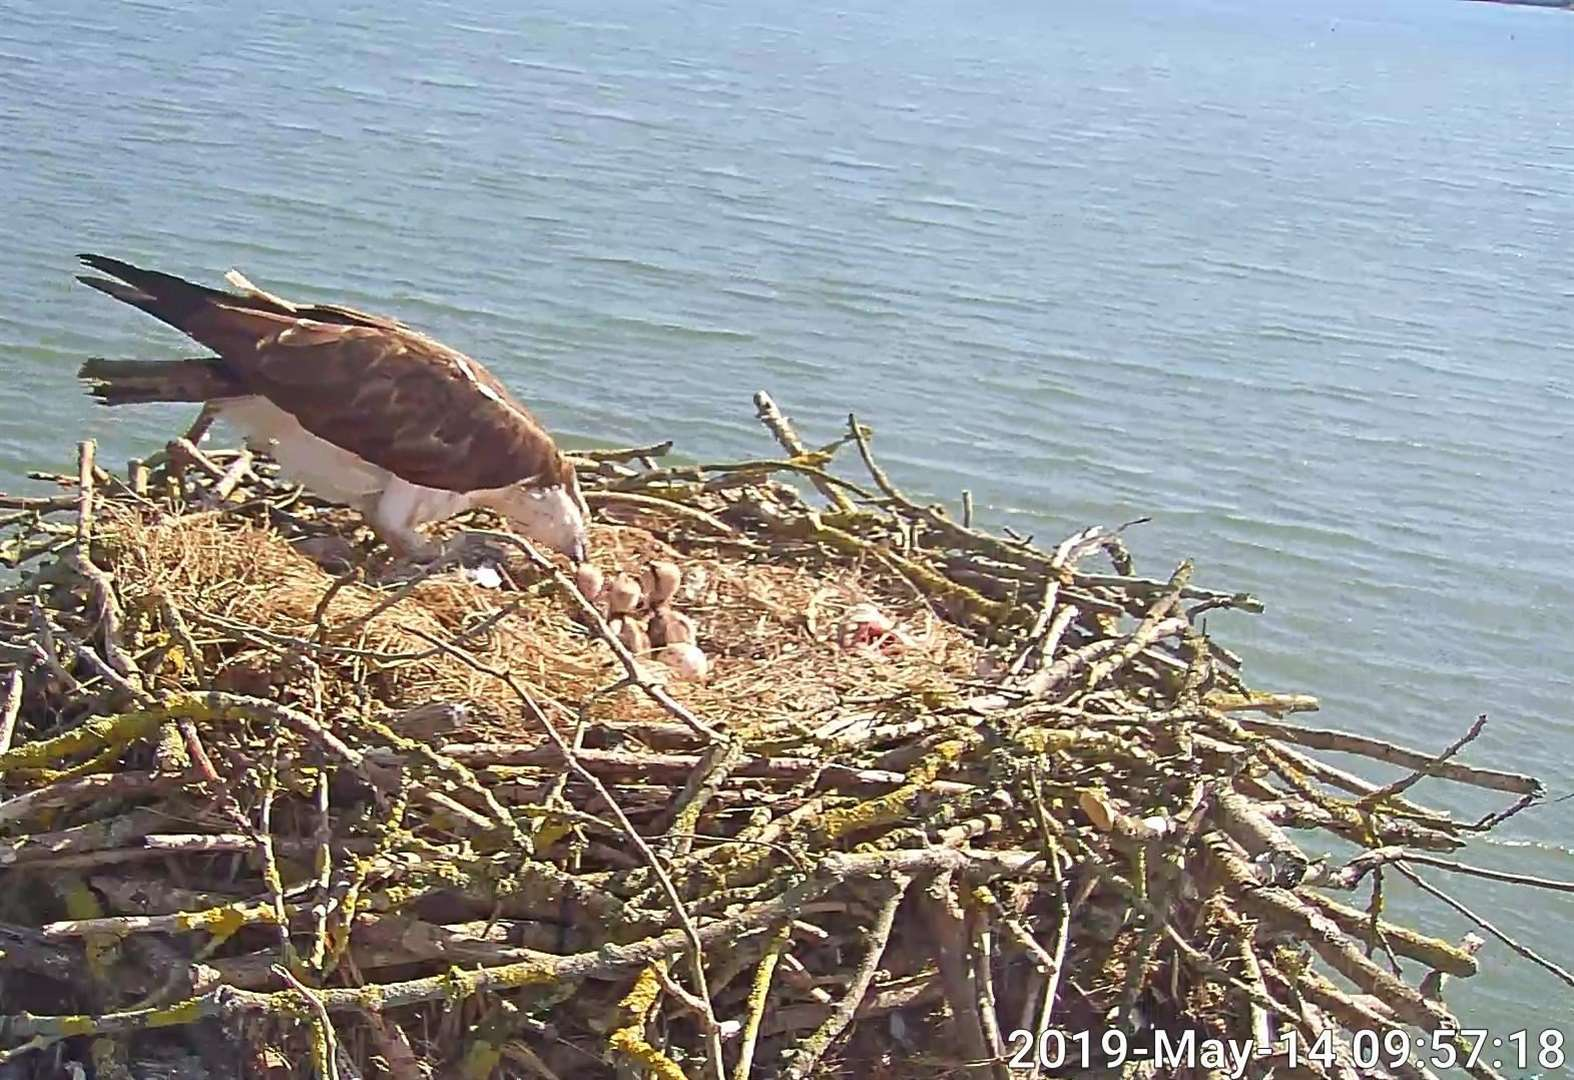 Rutland Osprey Project celebrates arrival of 150th chick